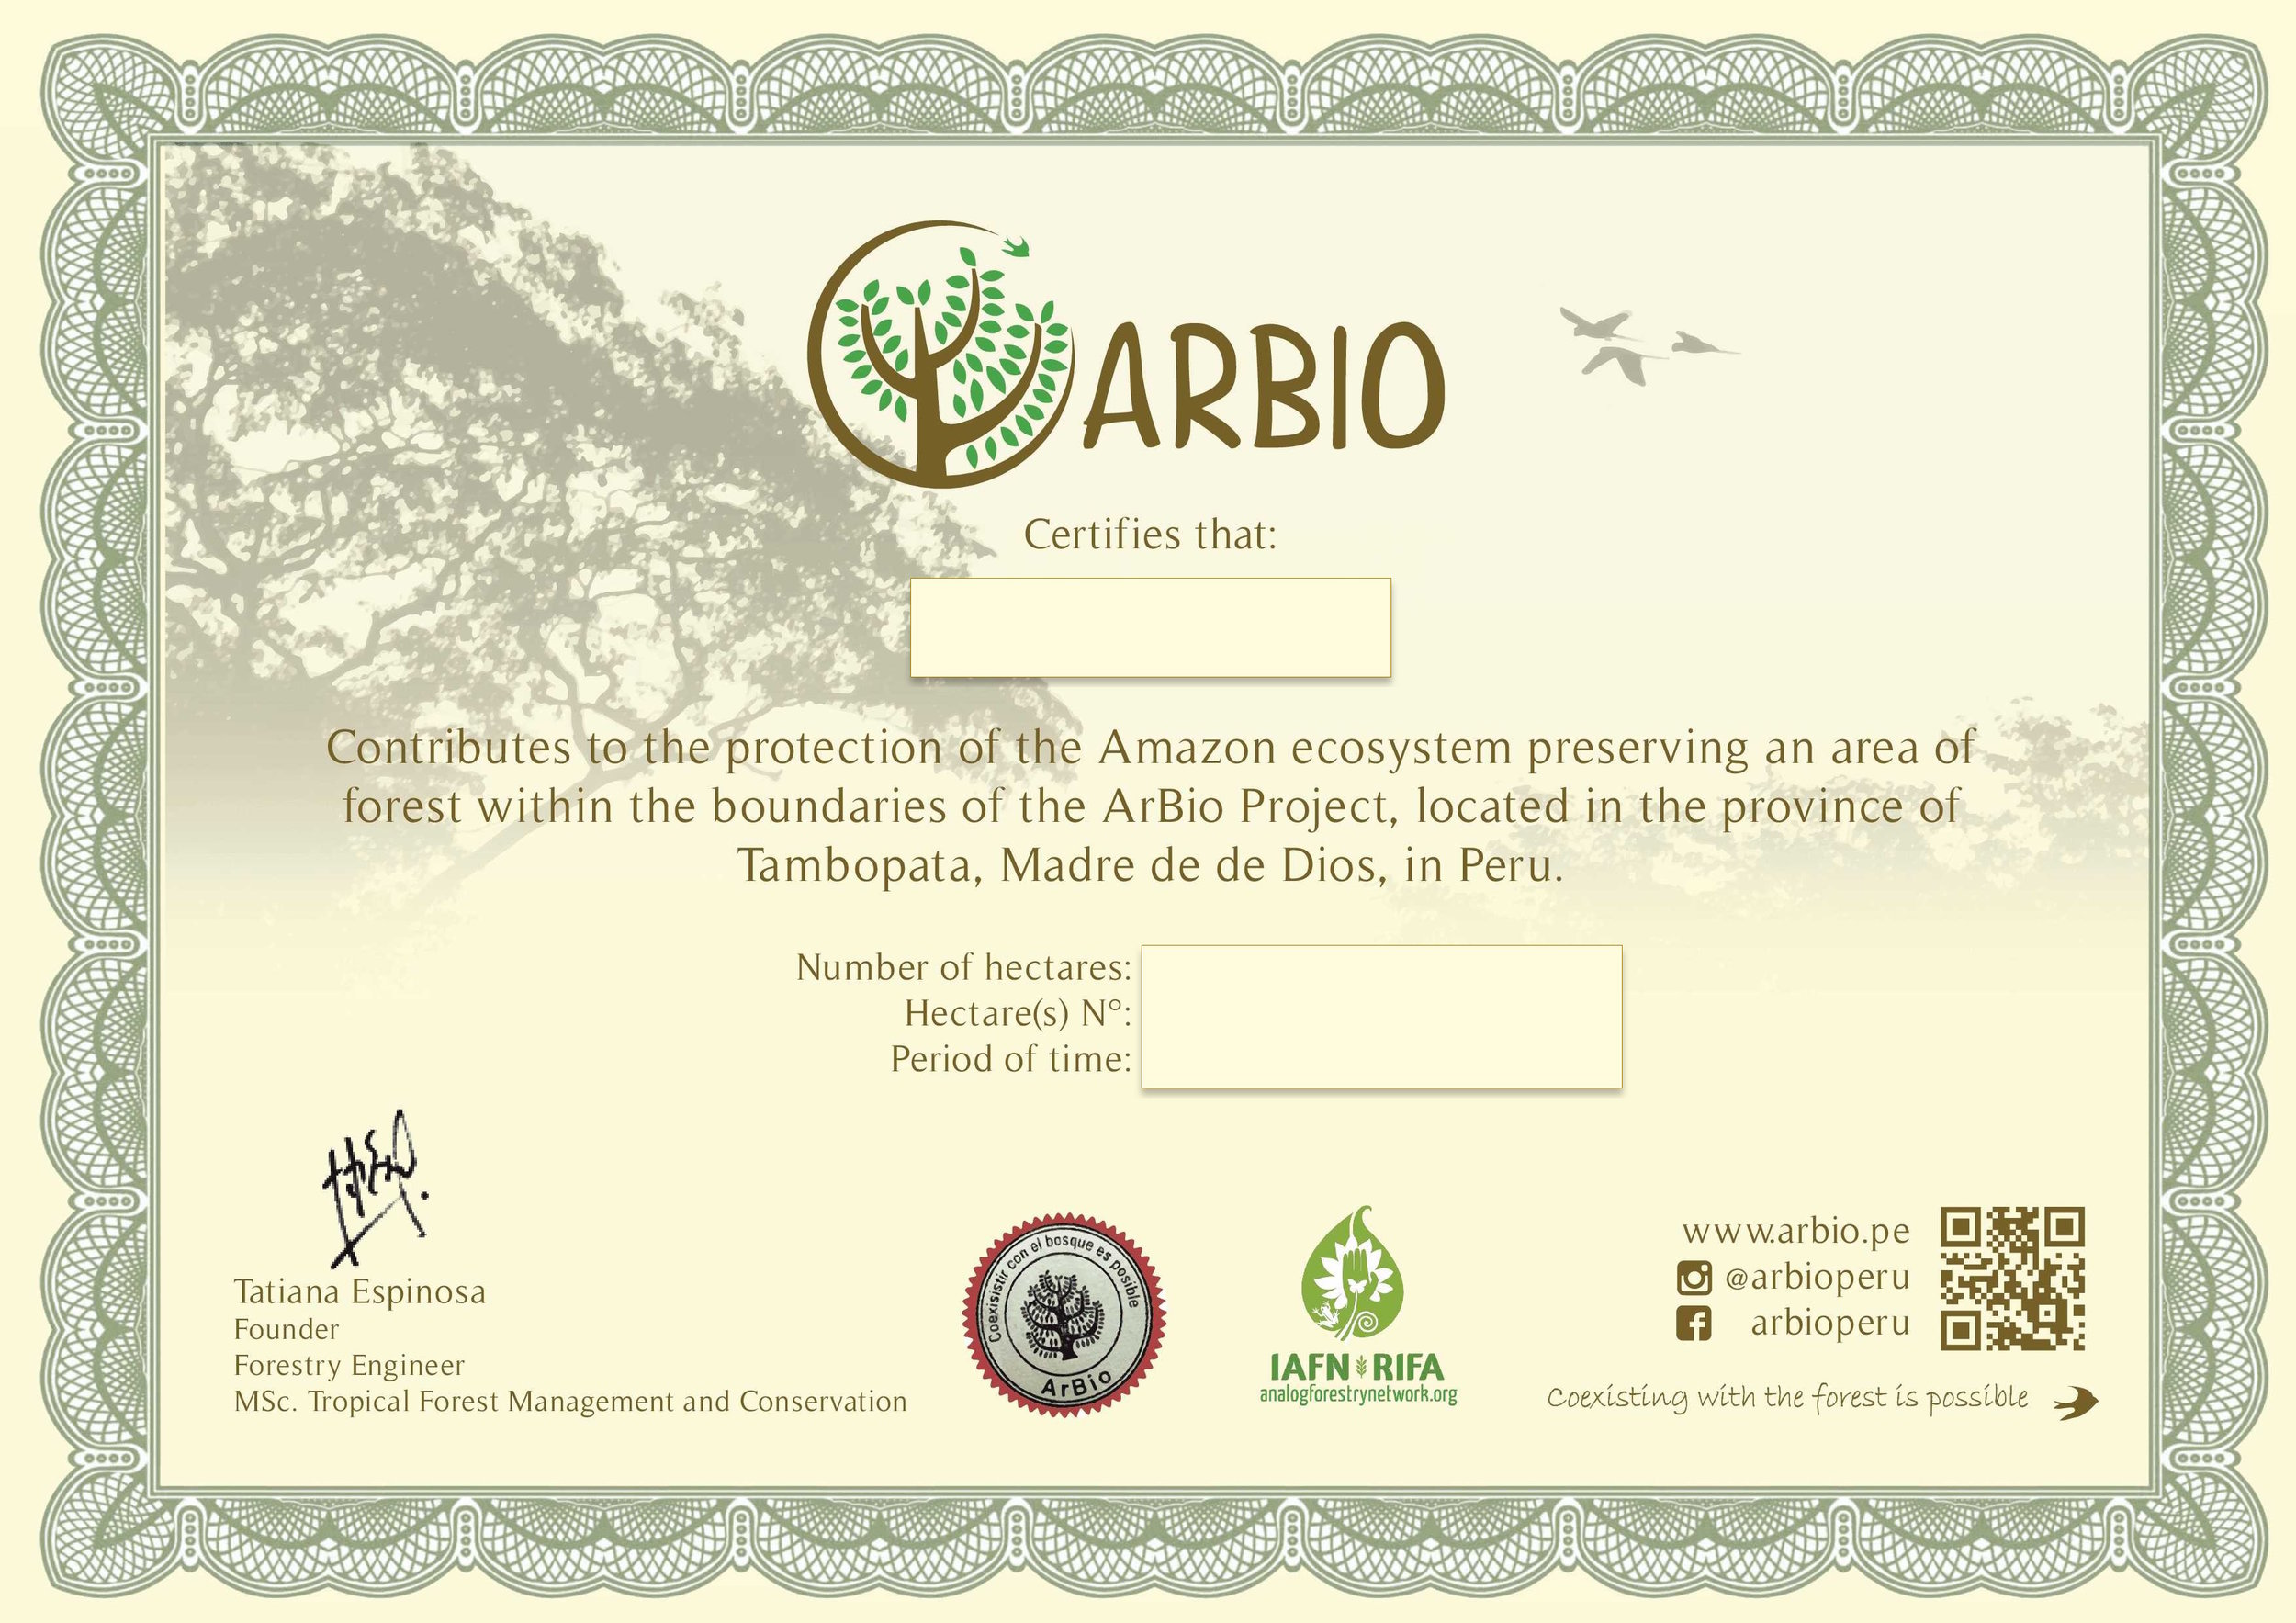 To celebrate your very own adopted hectare of Peruvian Amazon rainforest, ARBIO sends you this certificate!